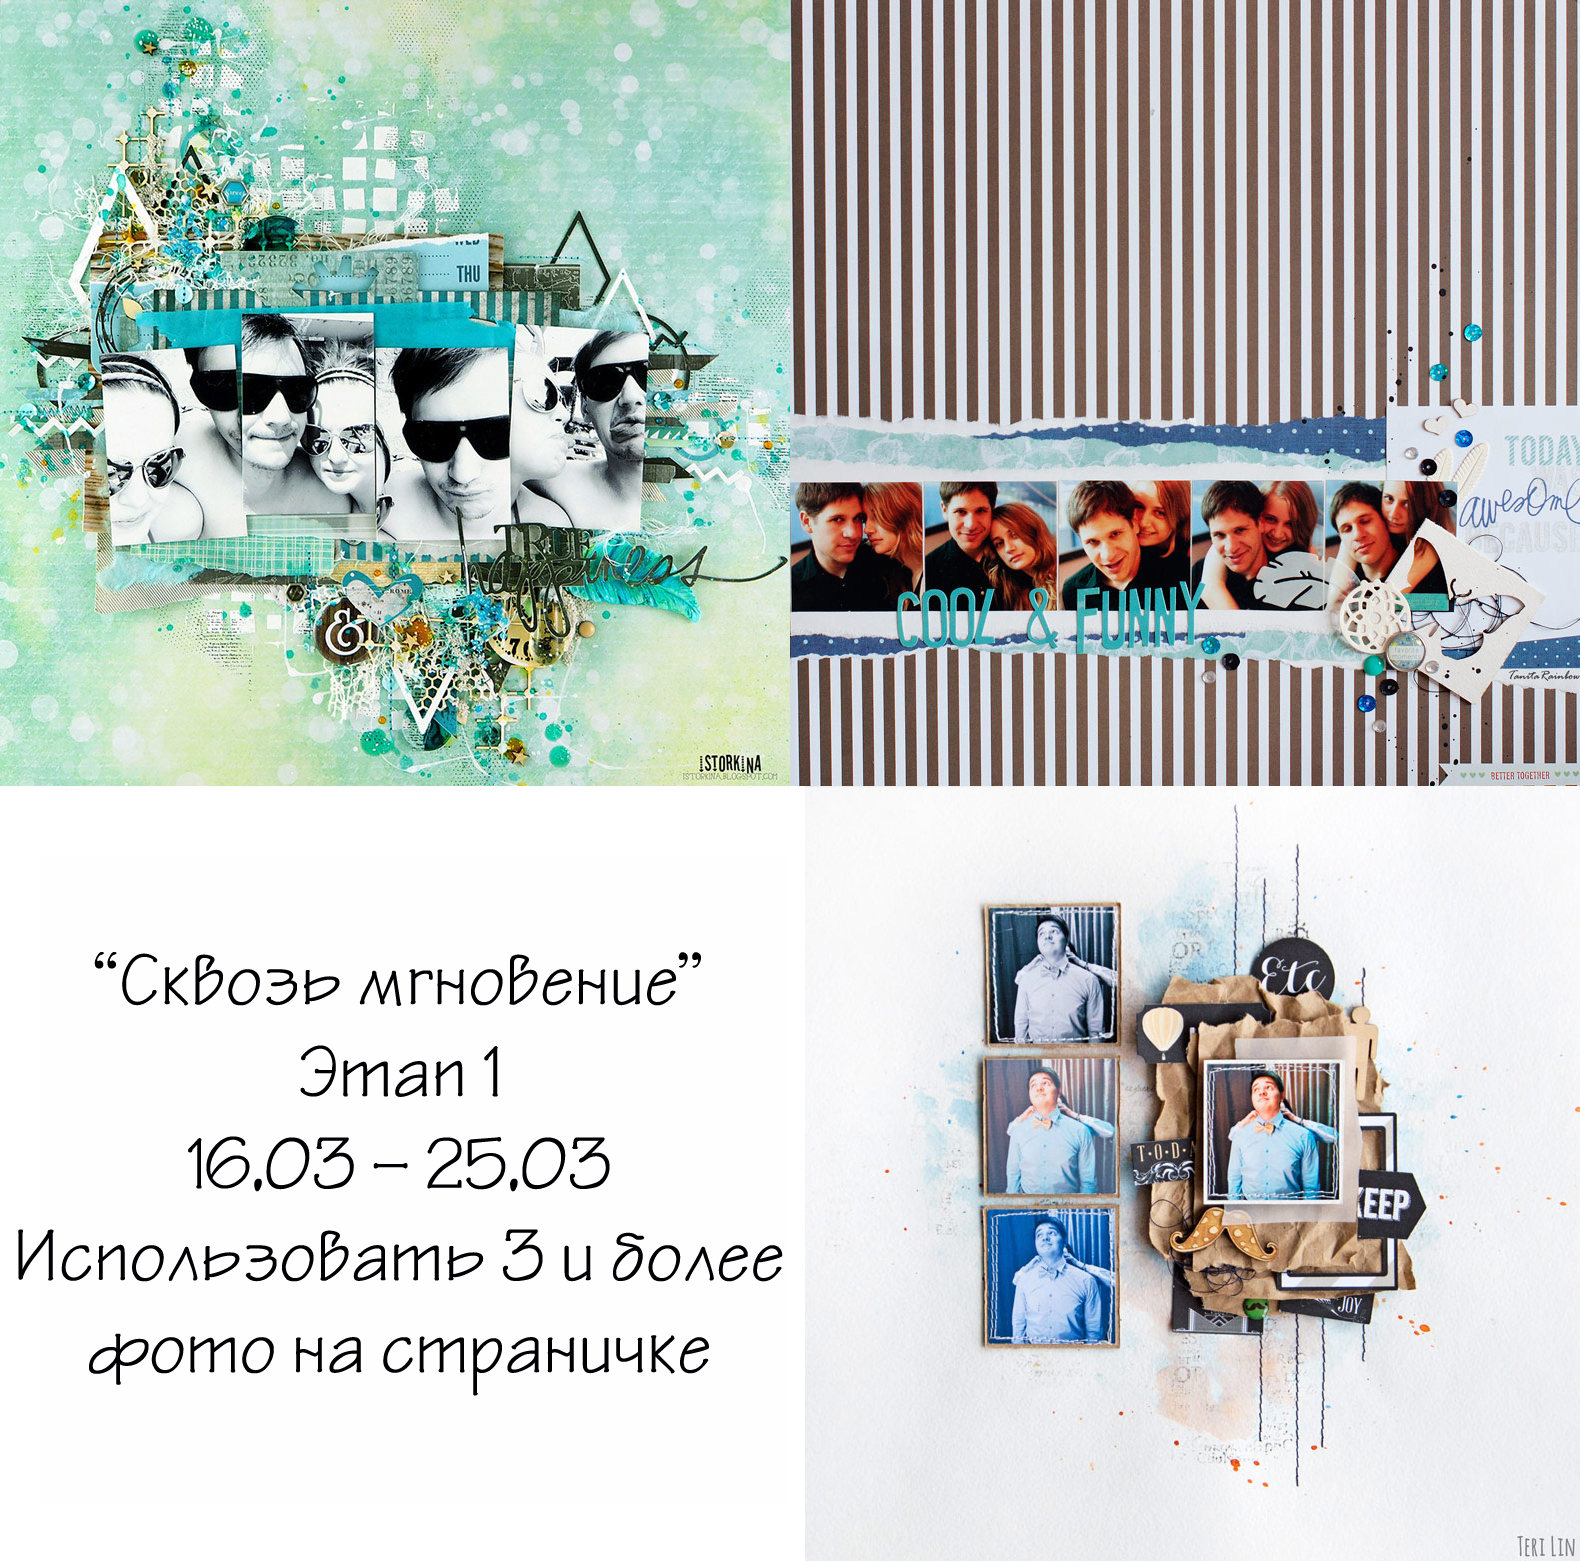 http://hand-made-by-rainbow.blogspot.ru/2015/03/1-joint-project-through-moment.html